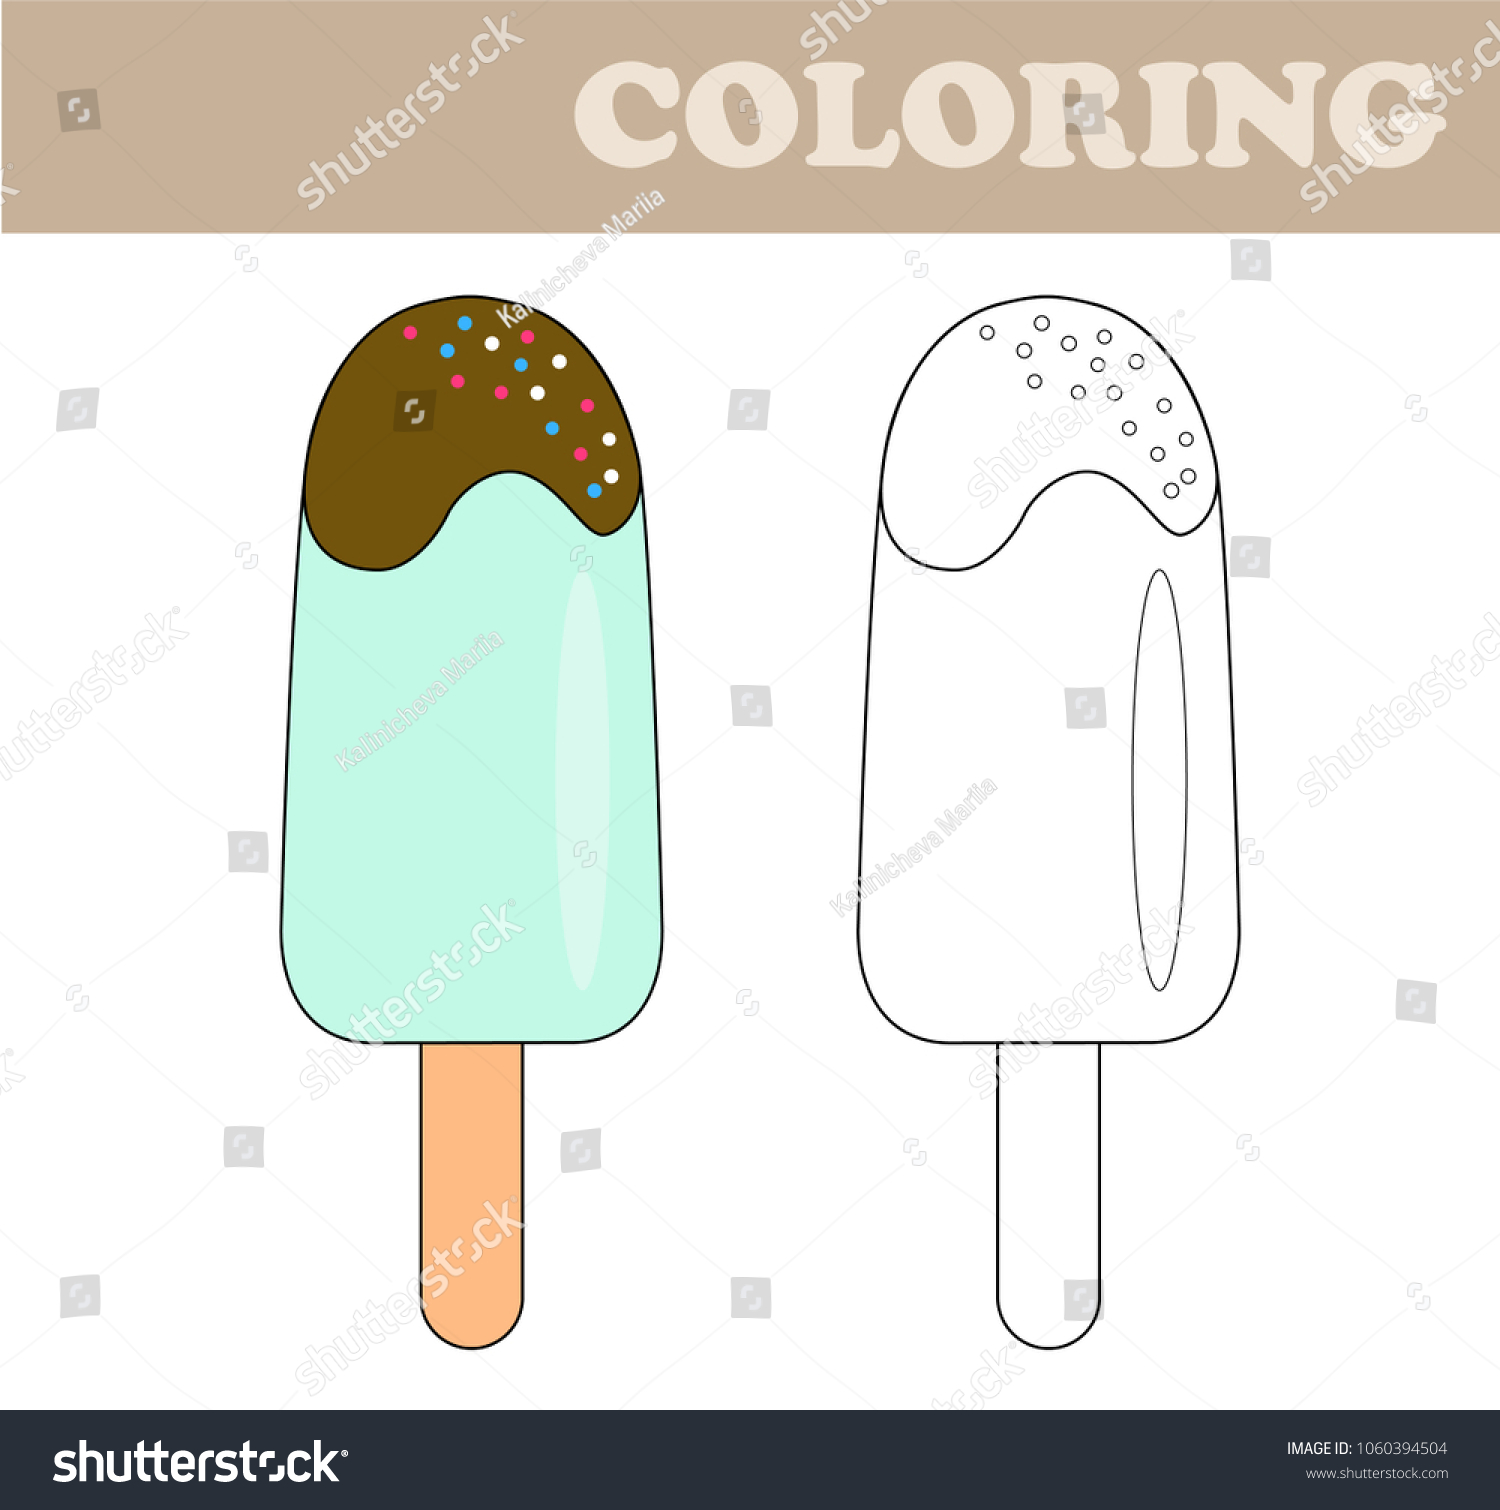 Coloring Page Ice Cream Coloring Book Stock Vector HD (Royalty Free ...